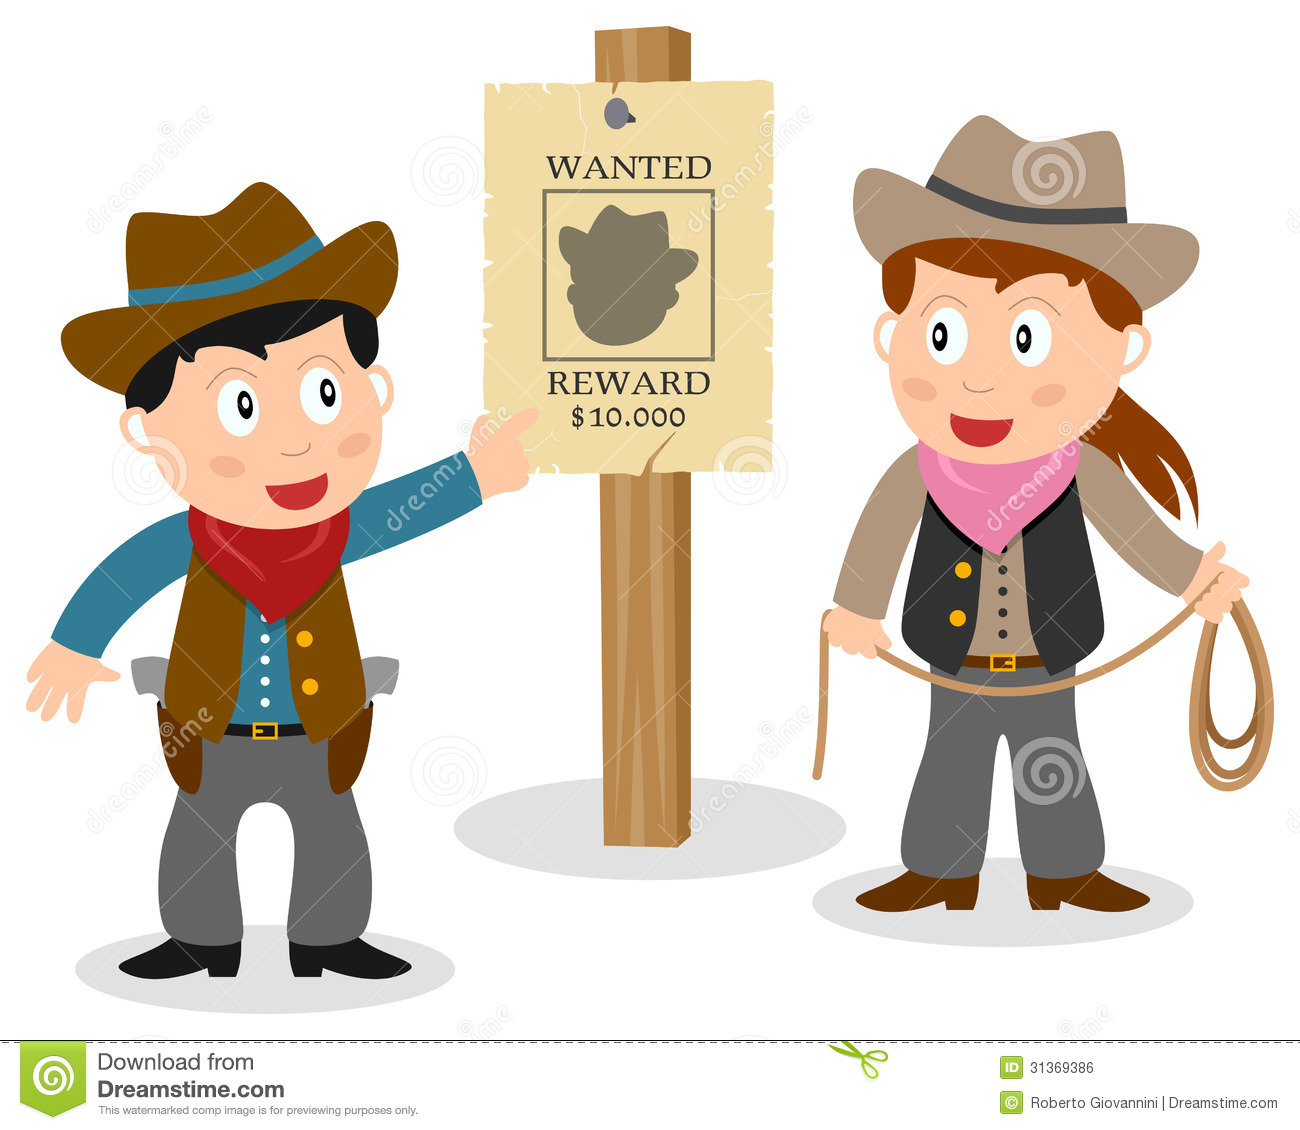 Two Cartoon Cowboy Kids  Boy And Girl  Looking At A Wanted Poster On